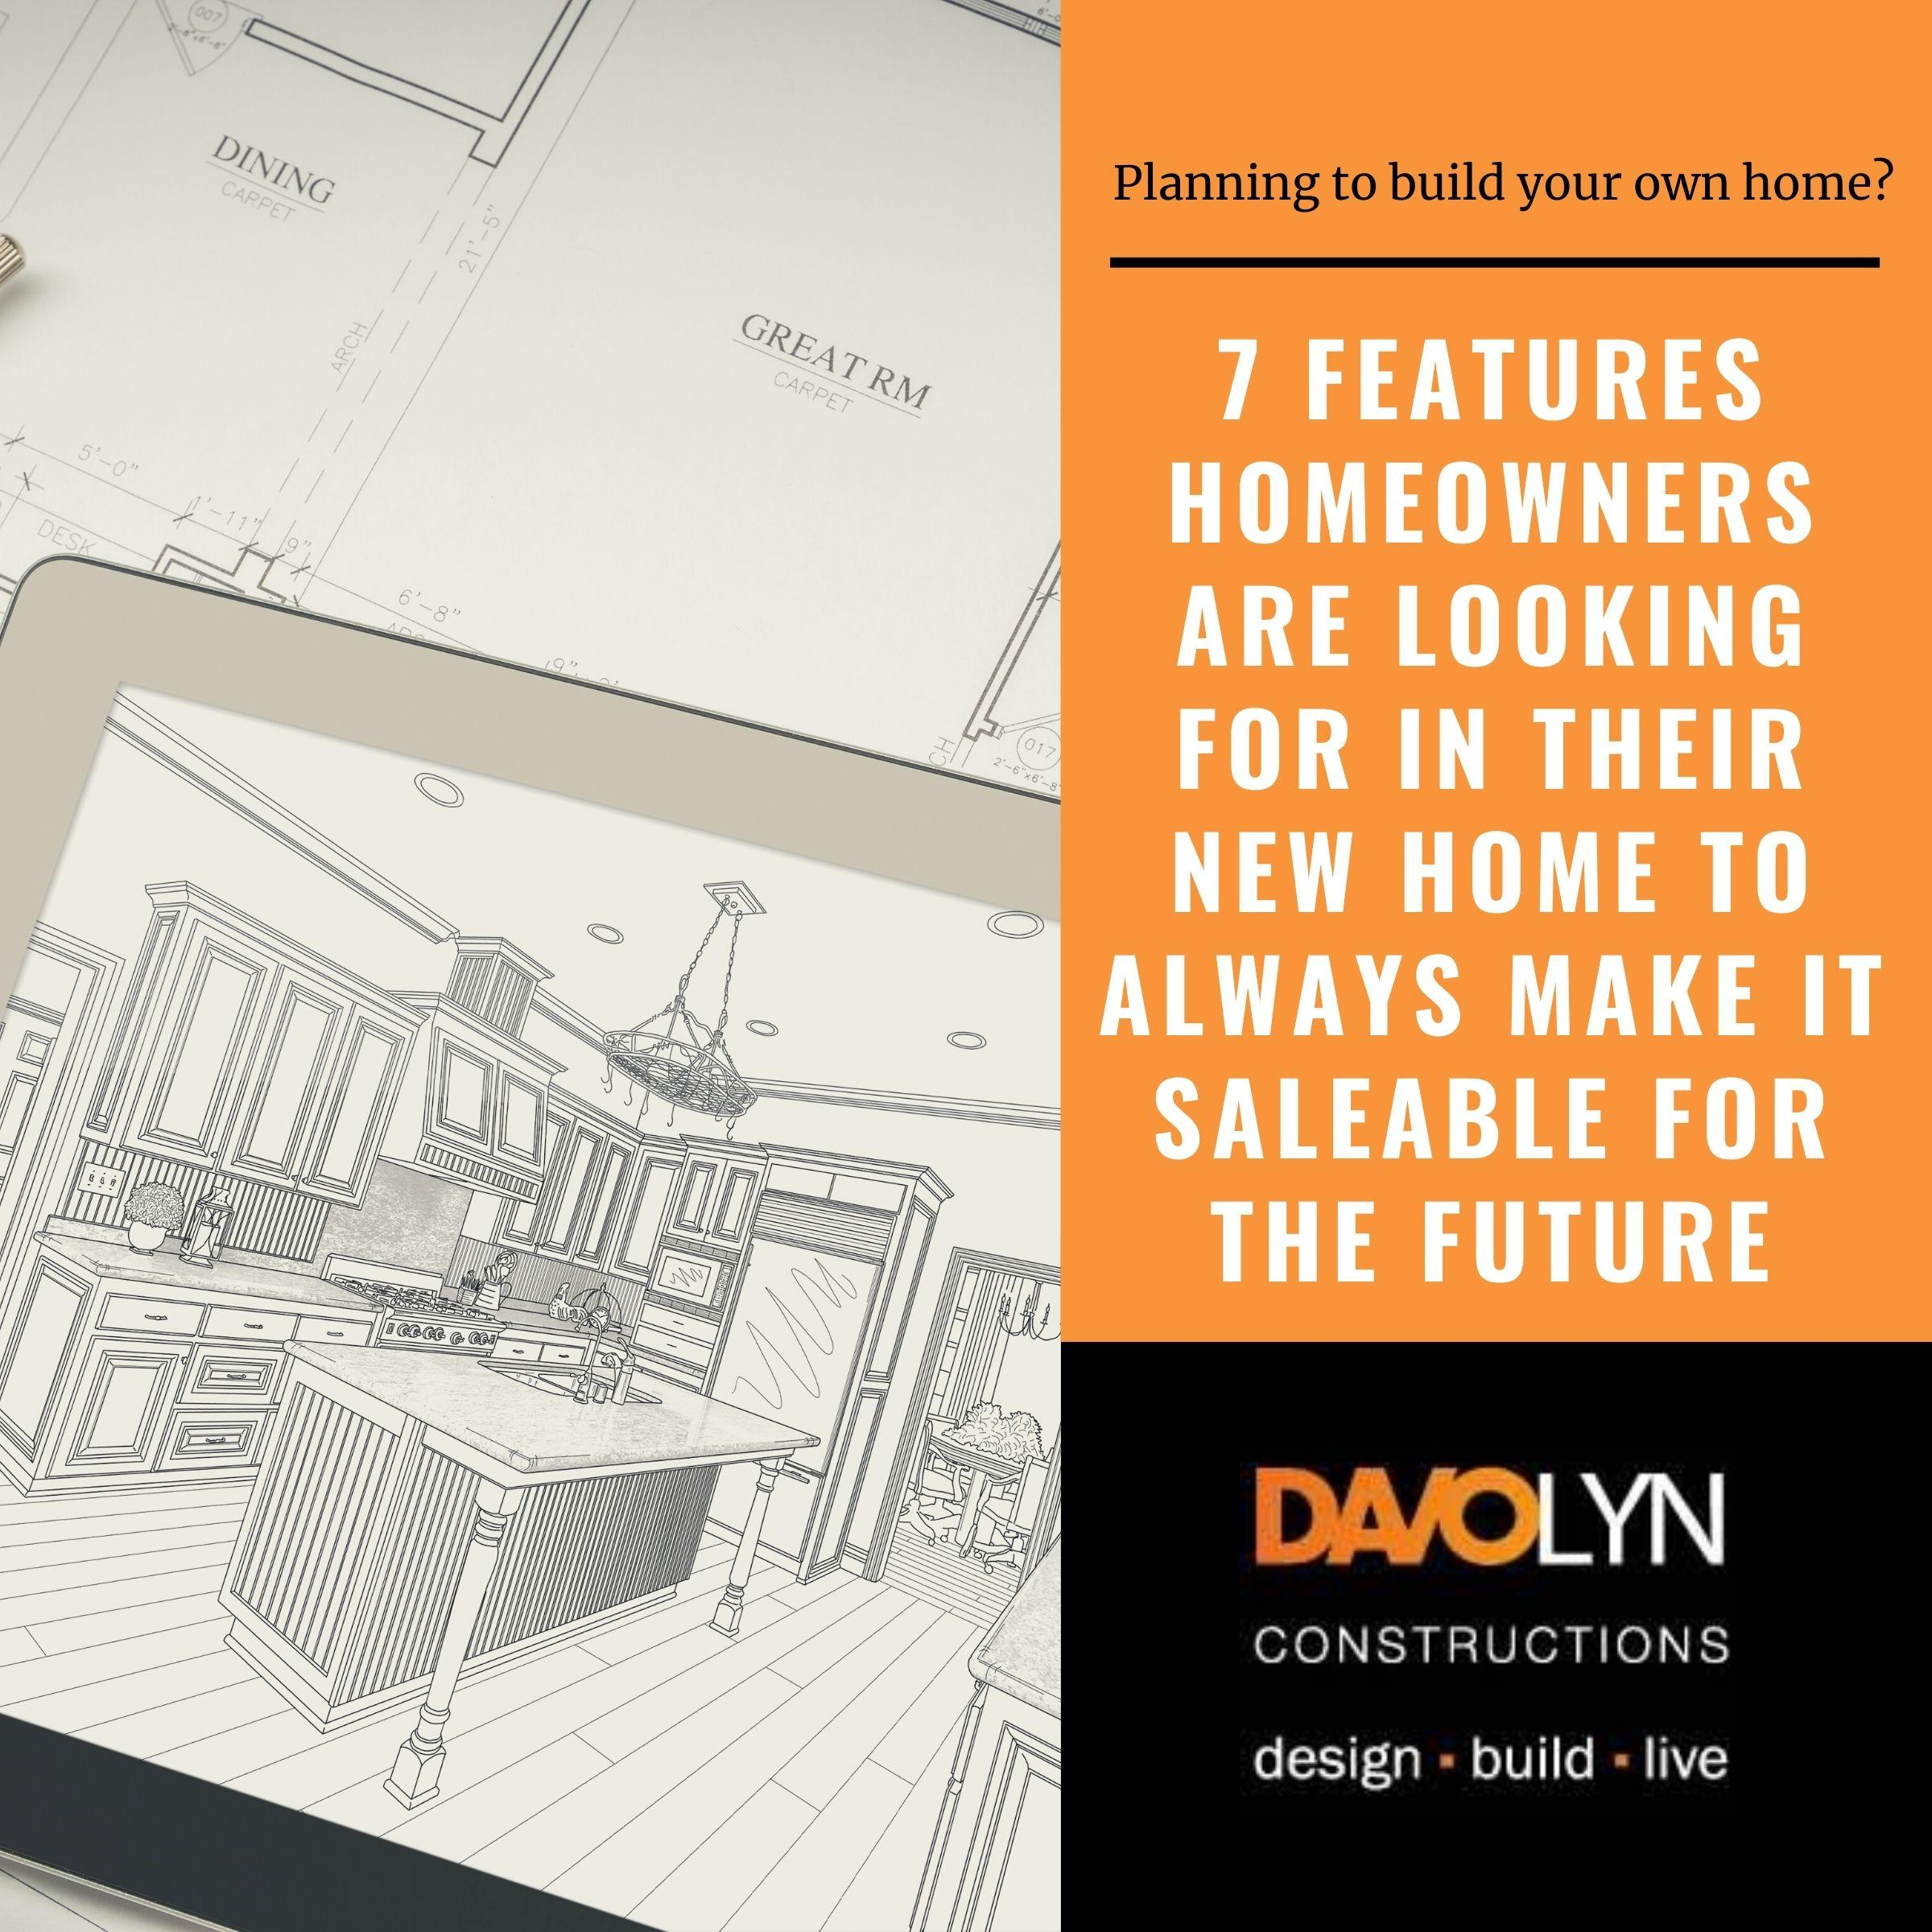 7 Features Homeowners are Looking for in Their New Home to Always Make It Saleable for the Future